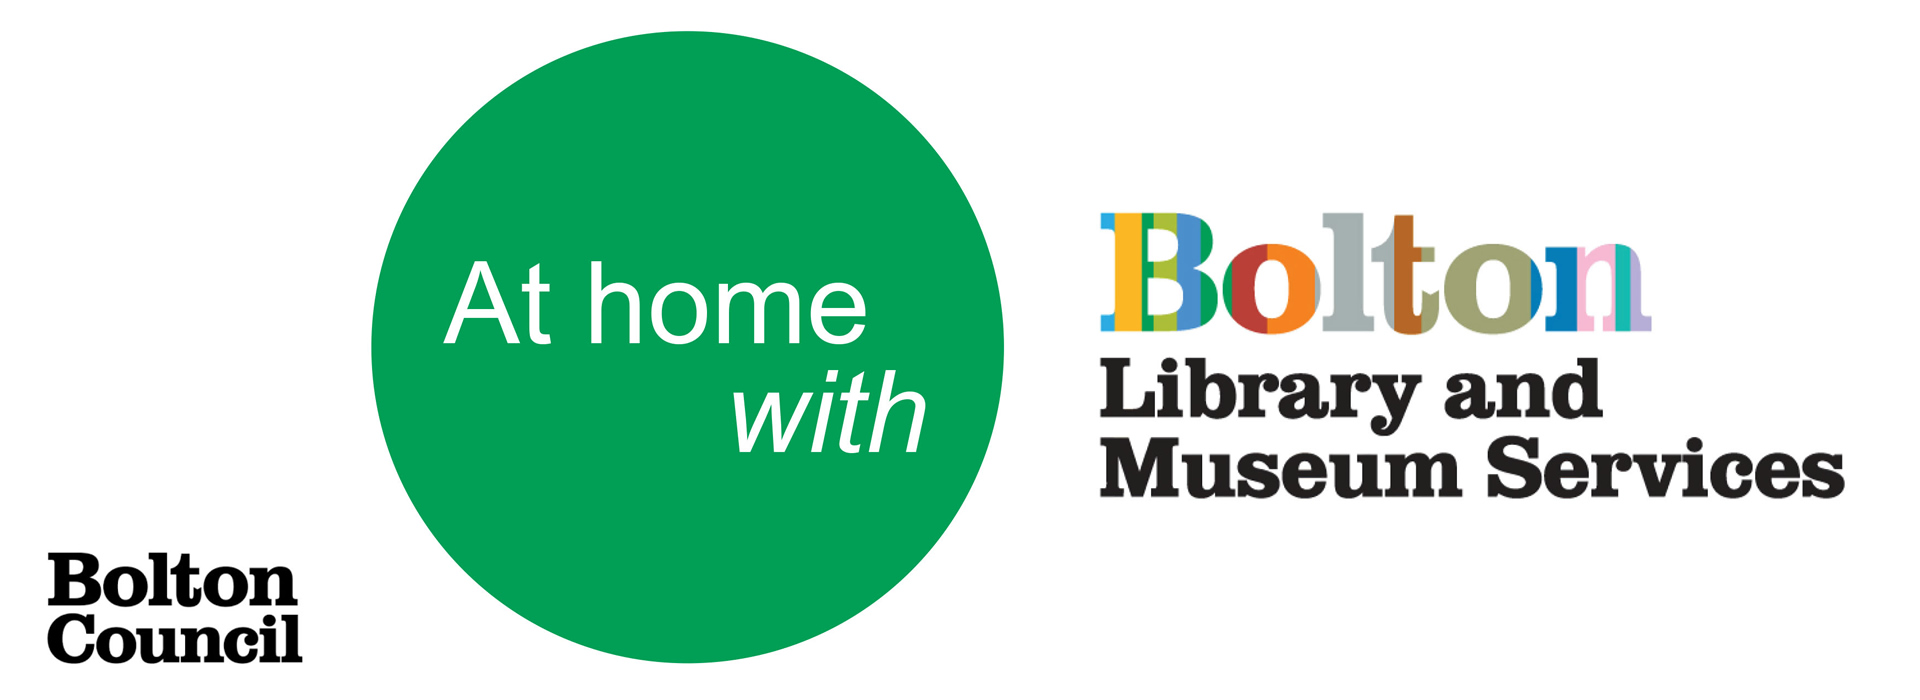 At home with Bolton Library and Museum Service